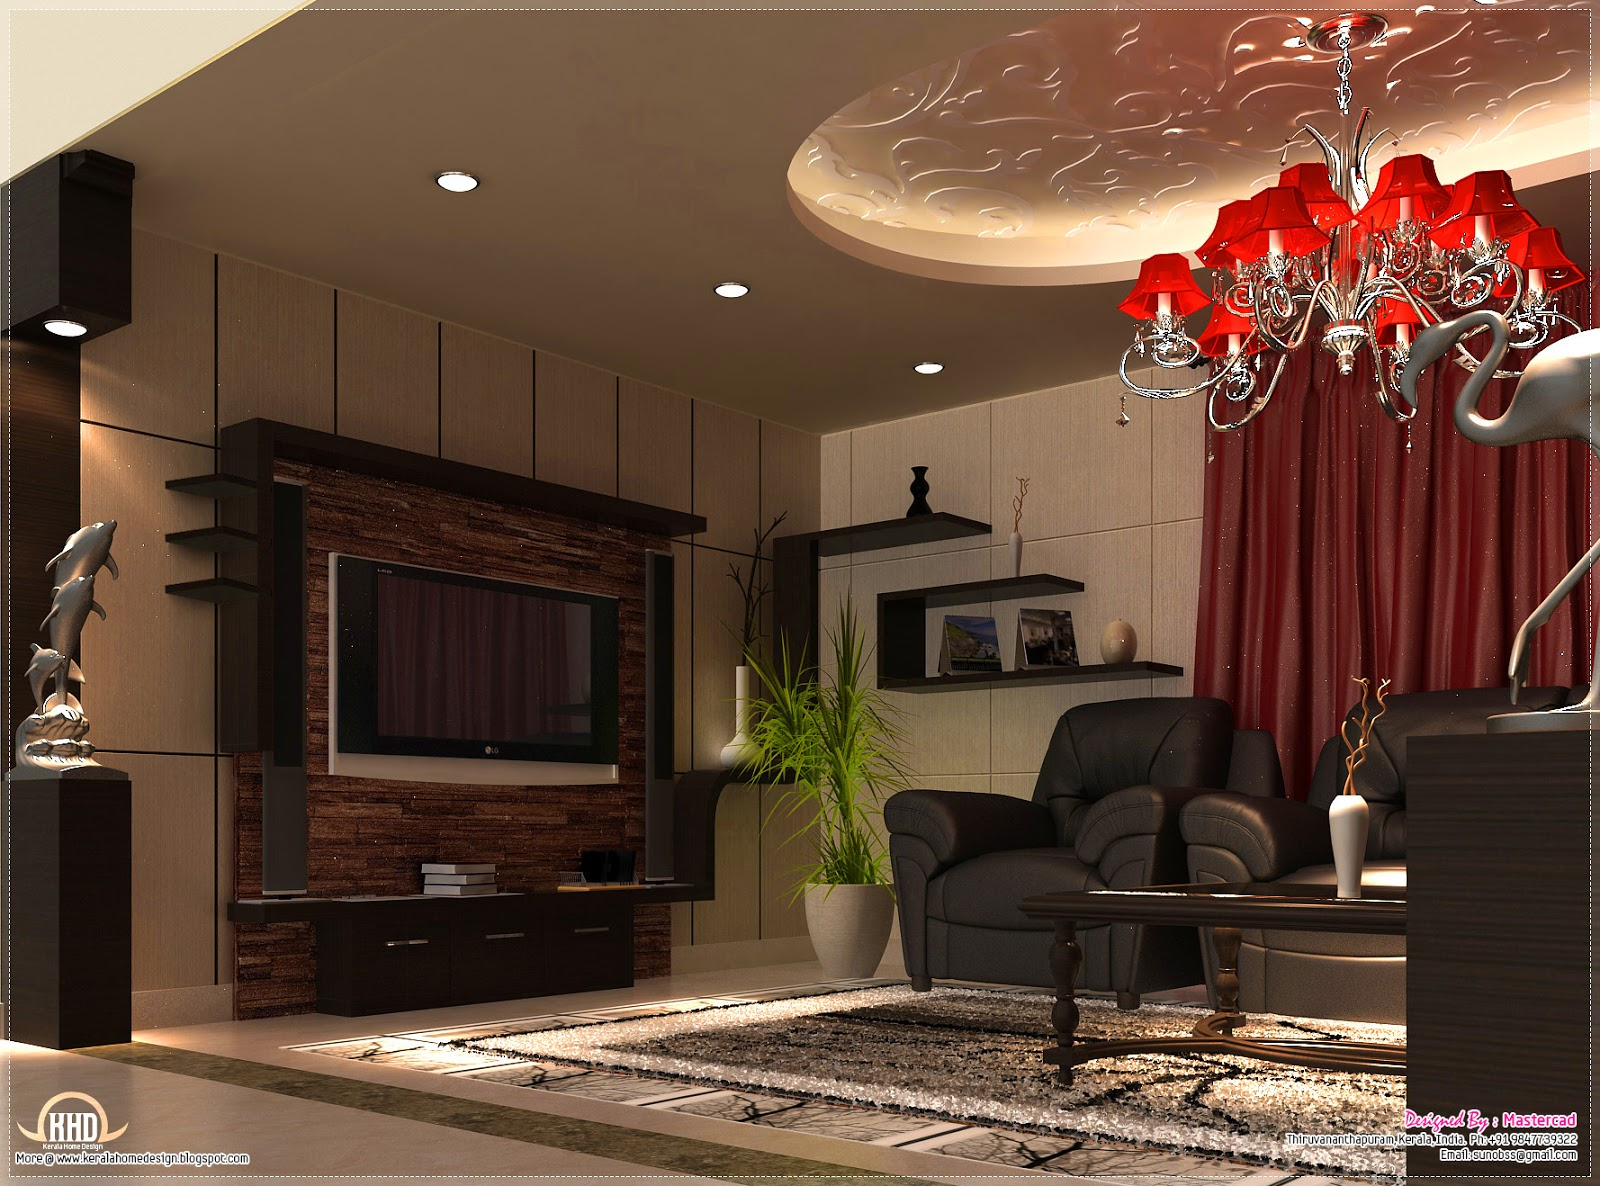 Interior design ideas kerala home design and floor plans for Living room interior design india